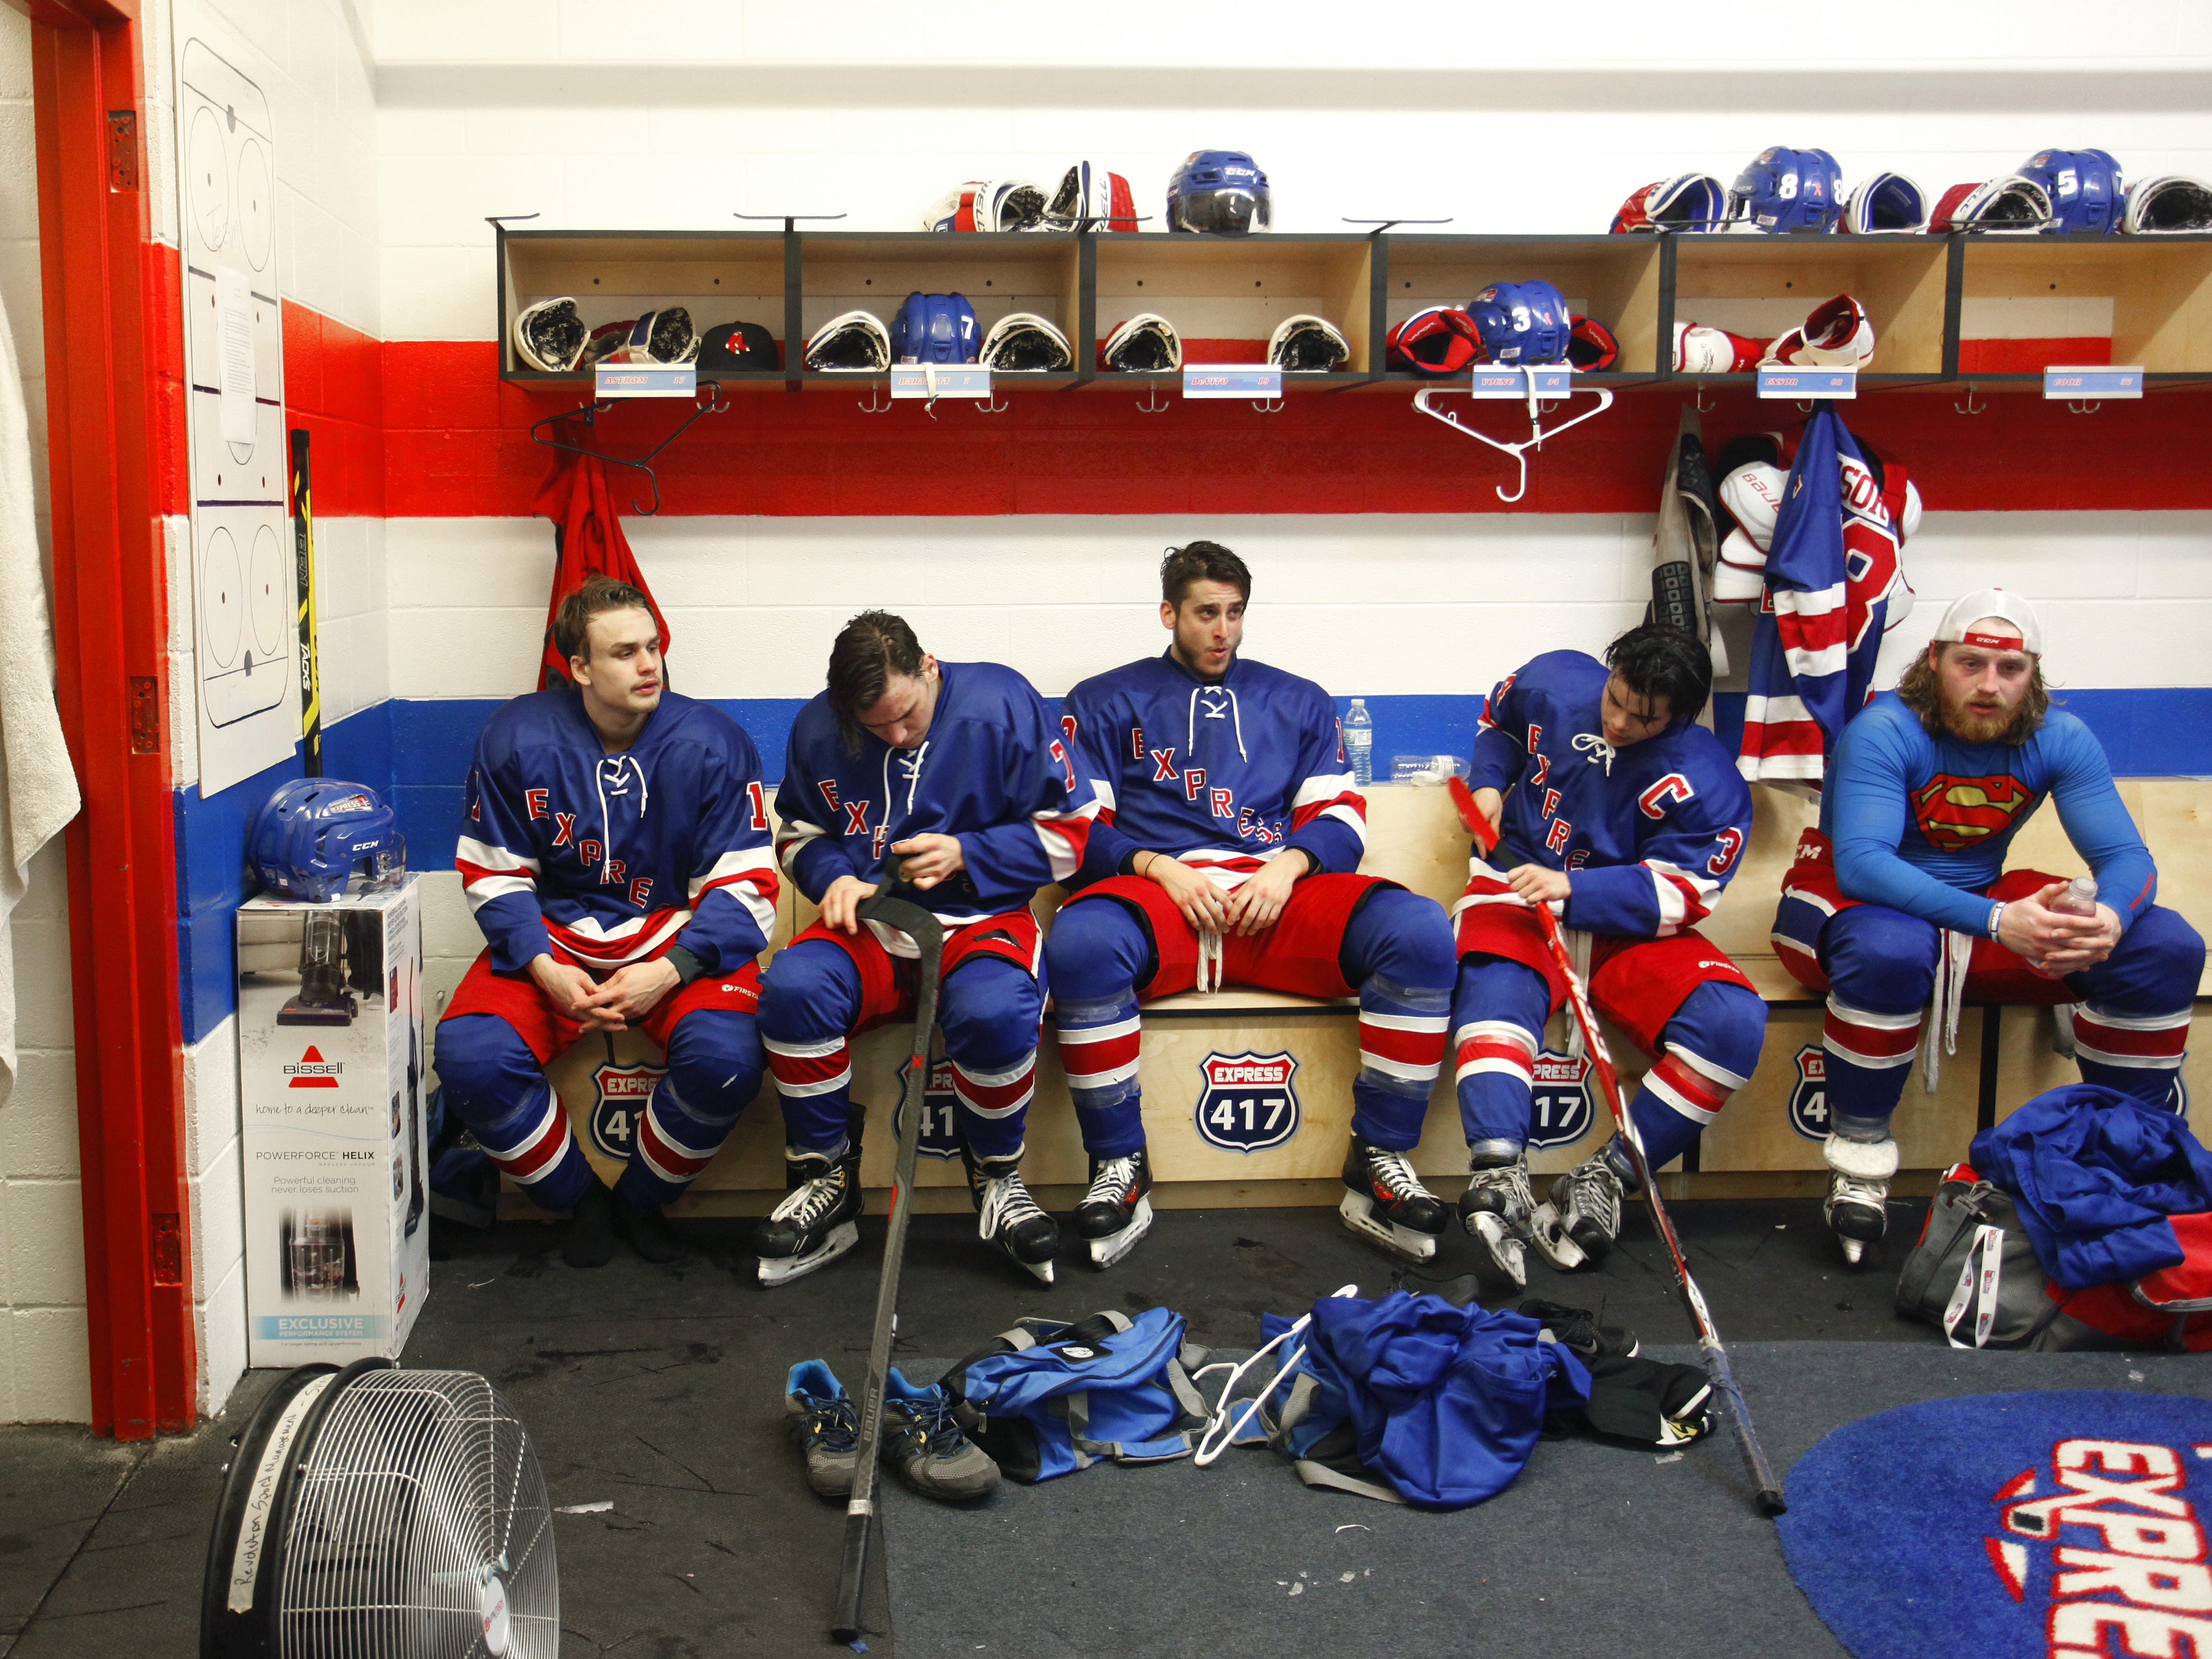 Springfield Express players (from left) Ted Astrom, Diego Bartlett, Vito DeVito, Collin Young, and Seth Ensor recover in the locker room between periods of a game against the Wichita Jr. Thunder at the Mediacom Ice Park on Friday, Feb. 13, 2015.